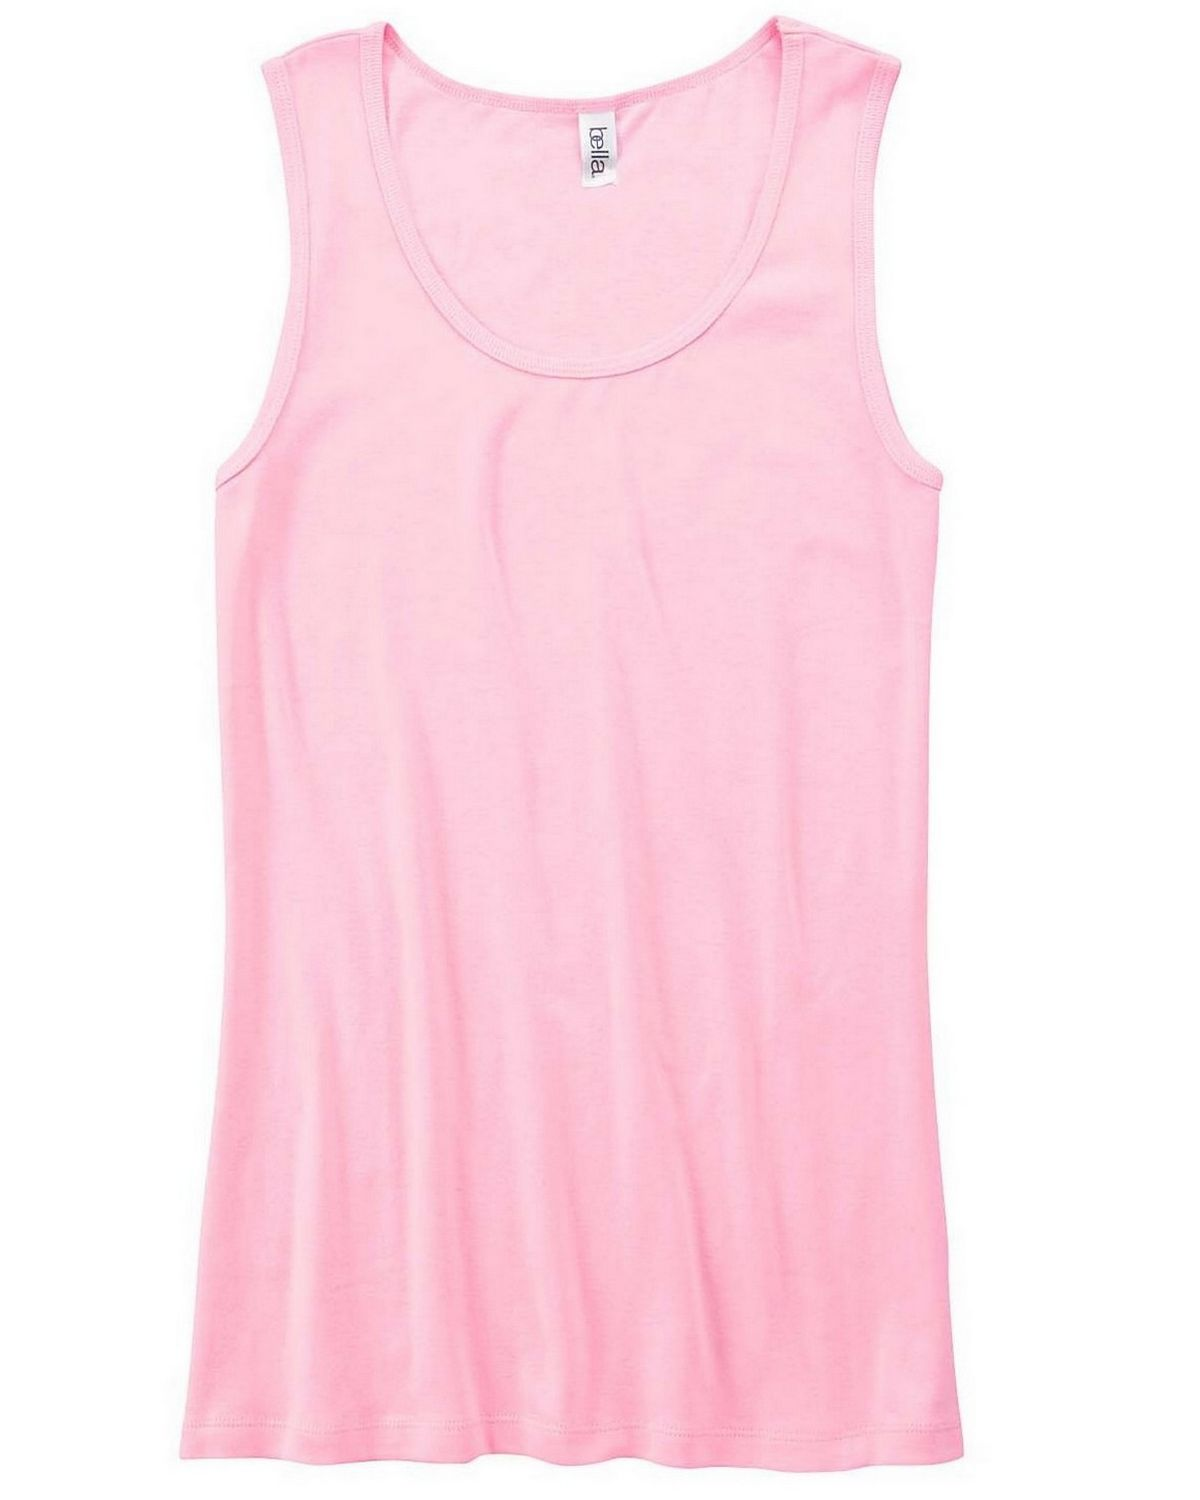 Bella + Canvas 6480 Ladies Missy Widestrap Baby Rib Tank - Pink - S 6480